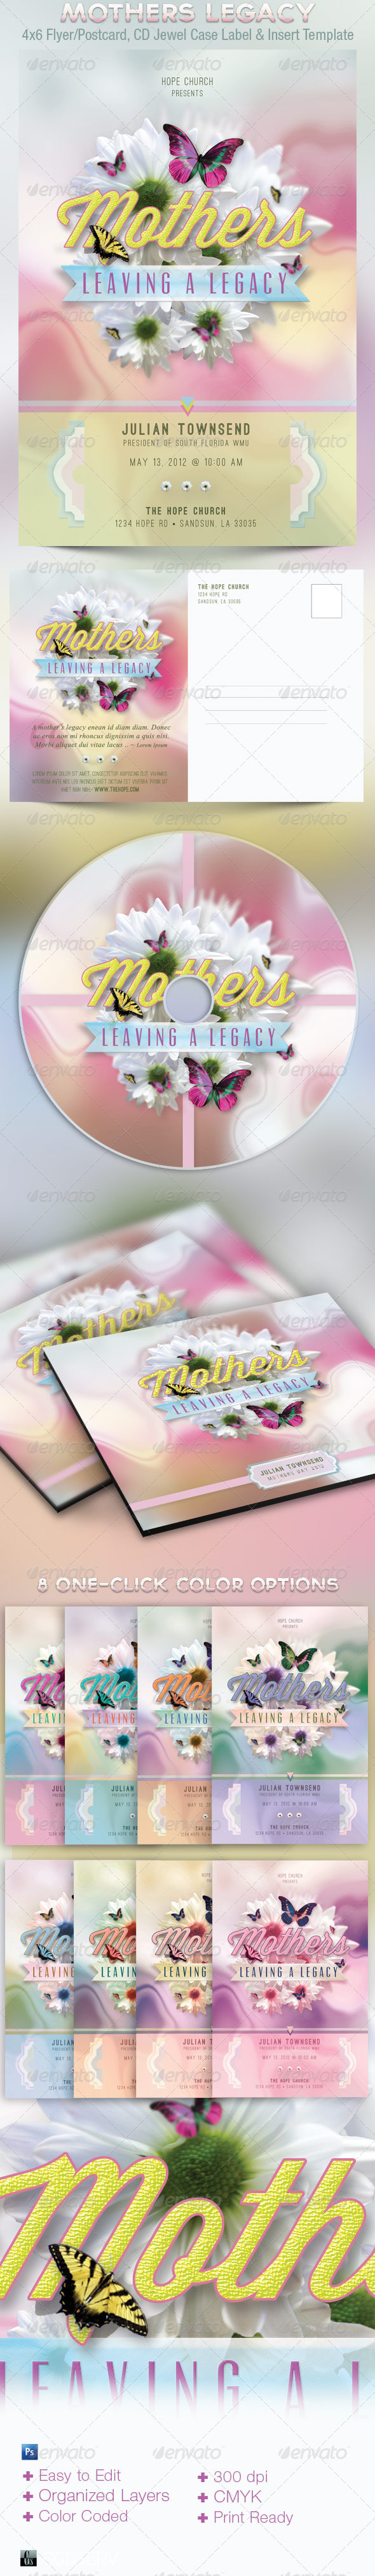 Mothers Leaving A Legacy Flyer and CD Template - Church Flyers